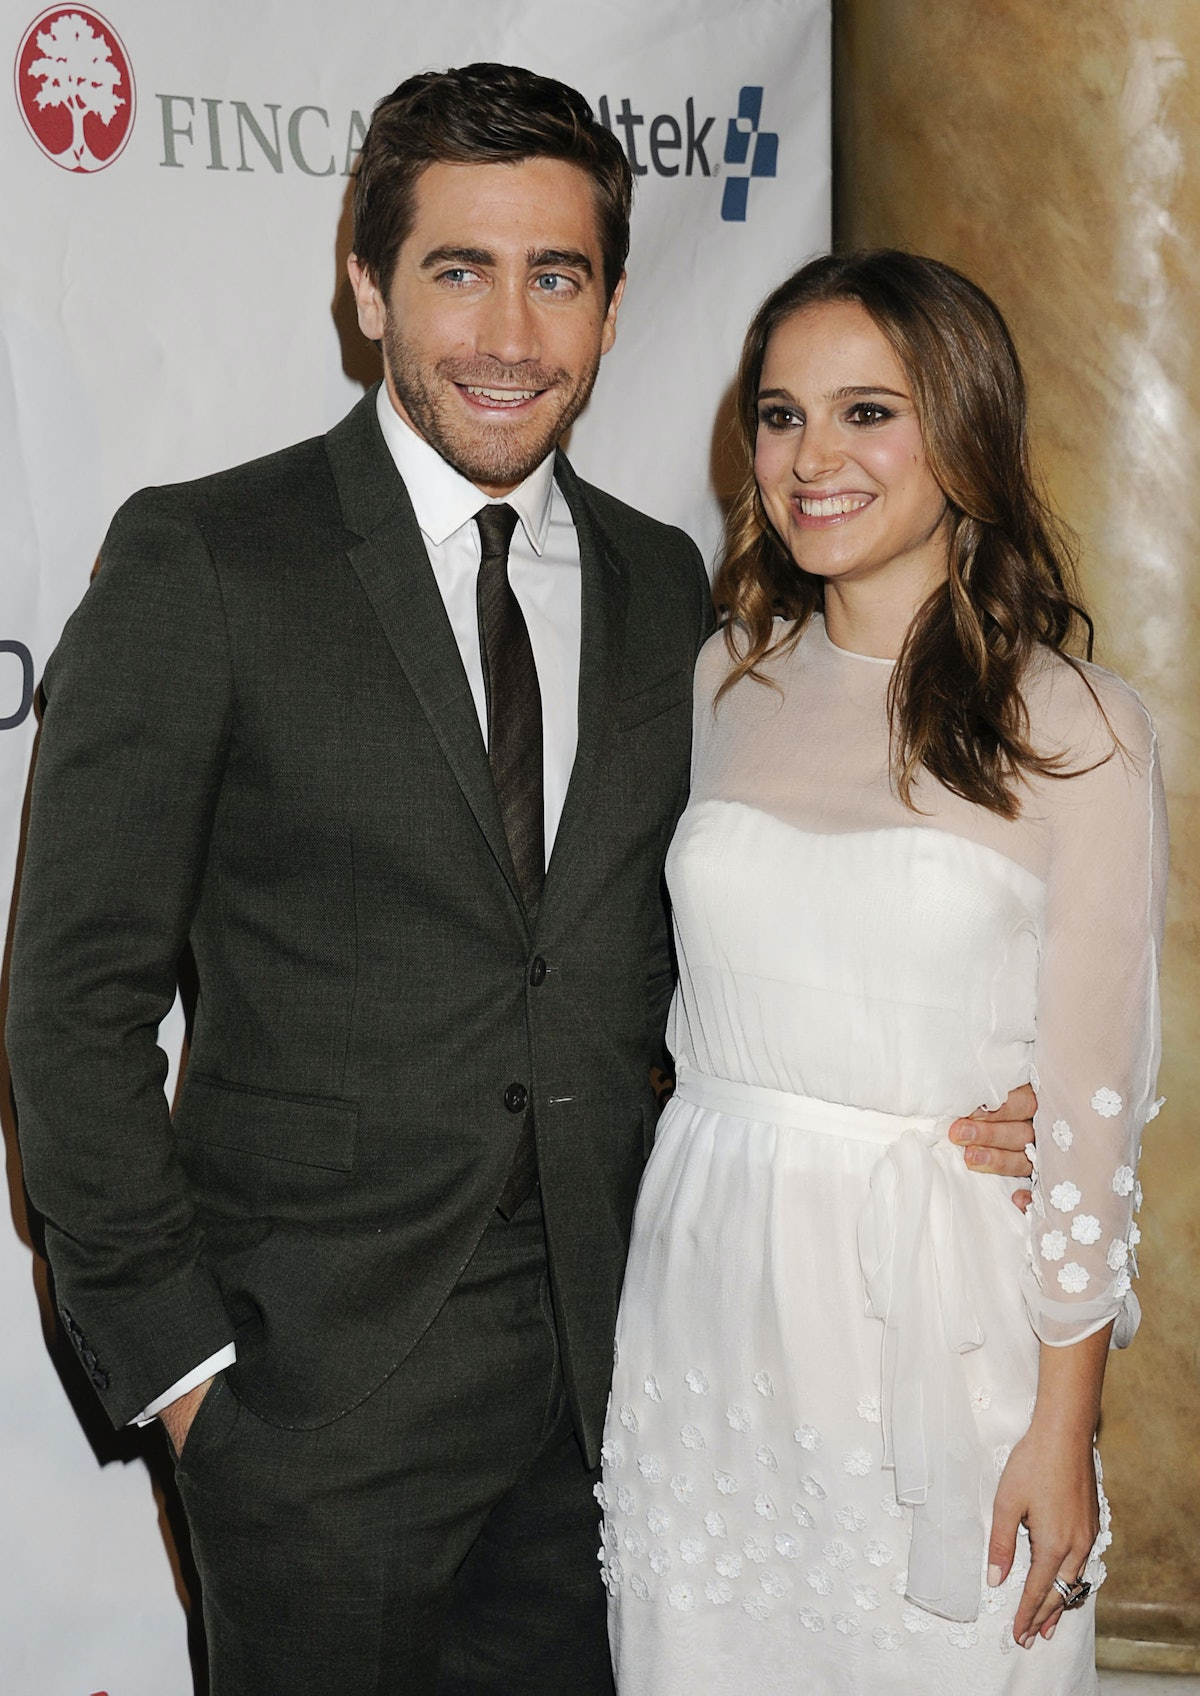 Jake Gyllenhaal and Natalie Portman attend the FINCA 25th anniversary celebration at Capitale on Nov...